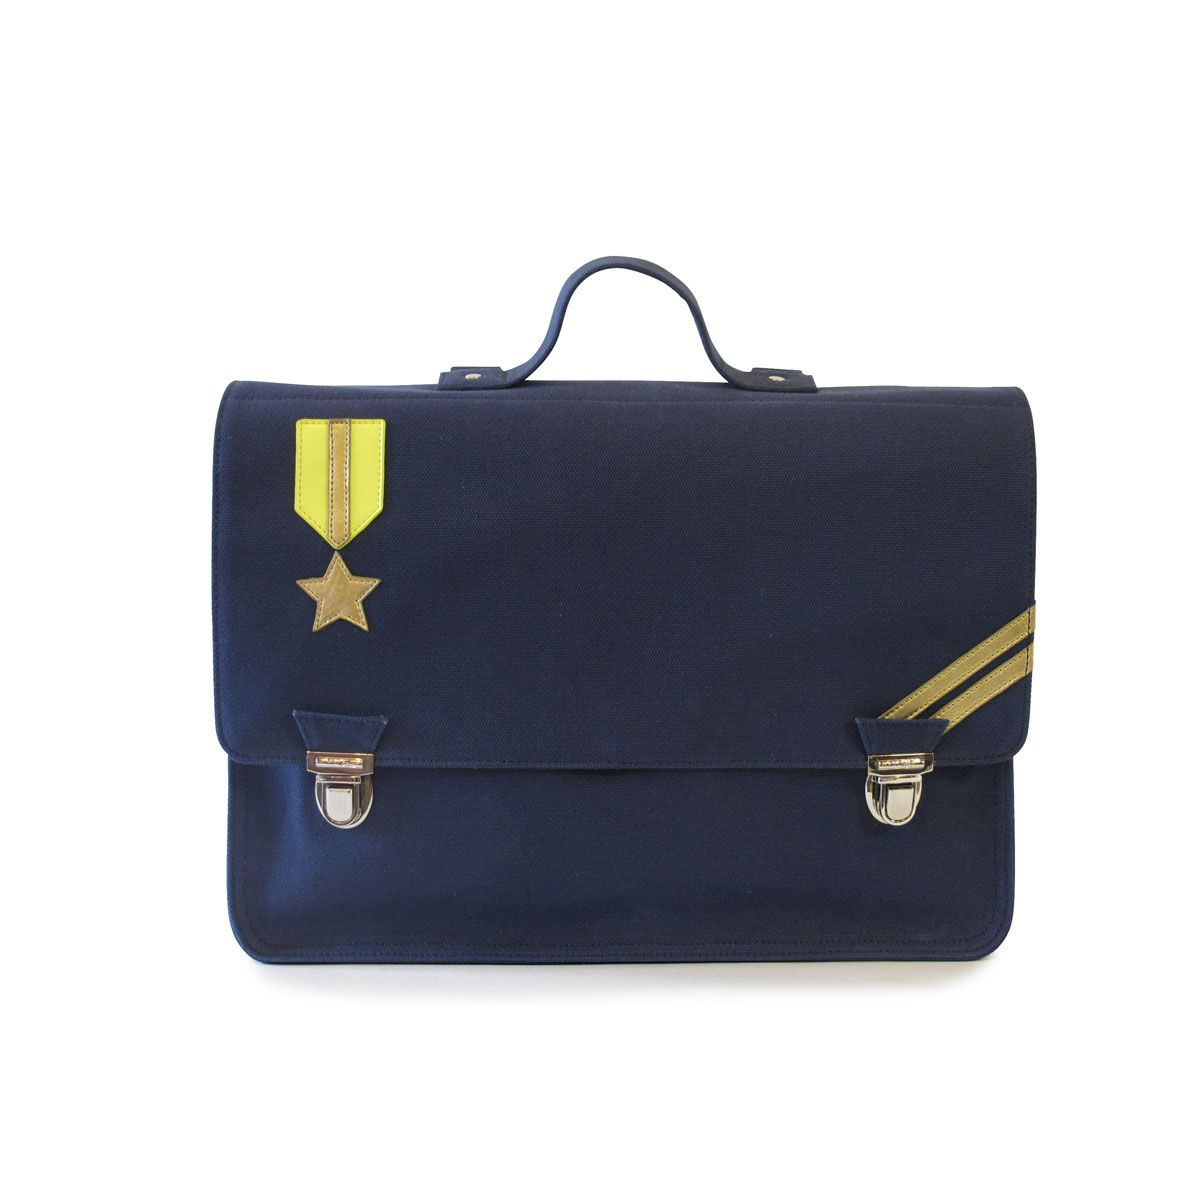 This wonderful brand is known for its stylish, classic designs inspired by chic French 1950's and 1960's design. The Navy first class satchel is a beautiful bag ideal for students aged 6 years and over. The satchel has plenty of room inside for school equipment and belongings. The satchel is crafted from 100% cotton material, reinforced with metal rivets and fasteners and finished in a waterproof coating.